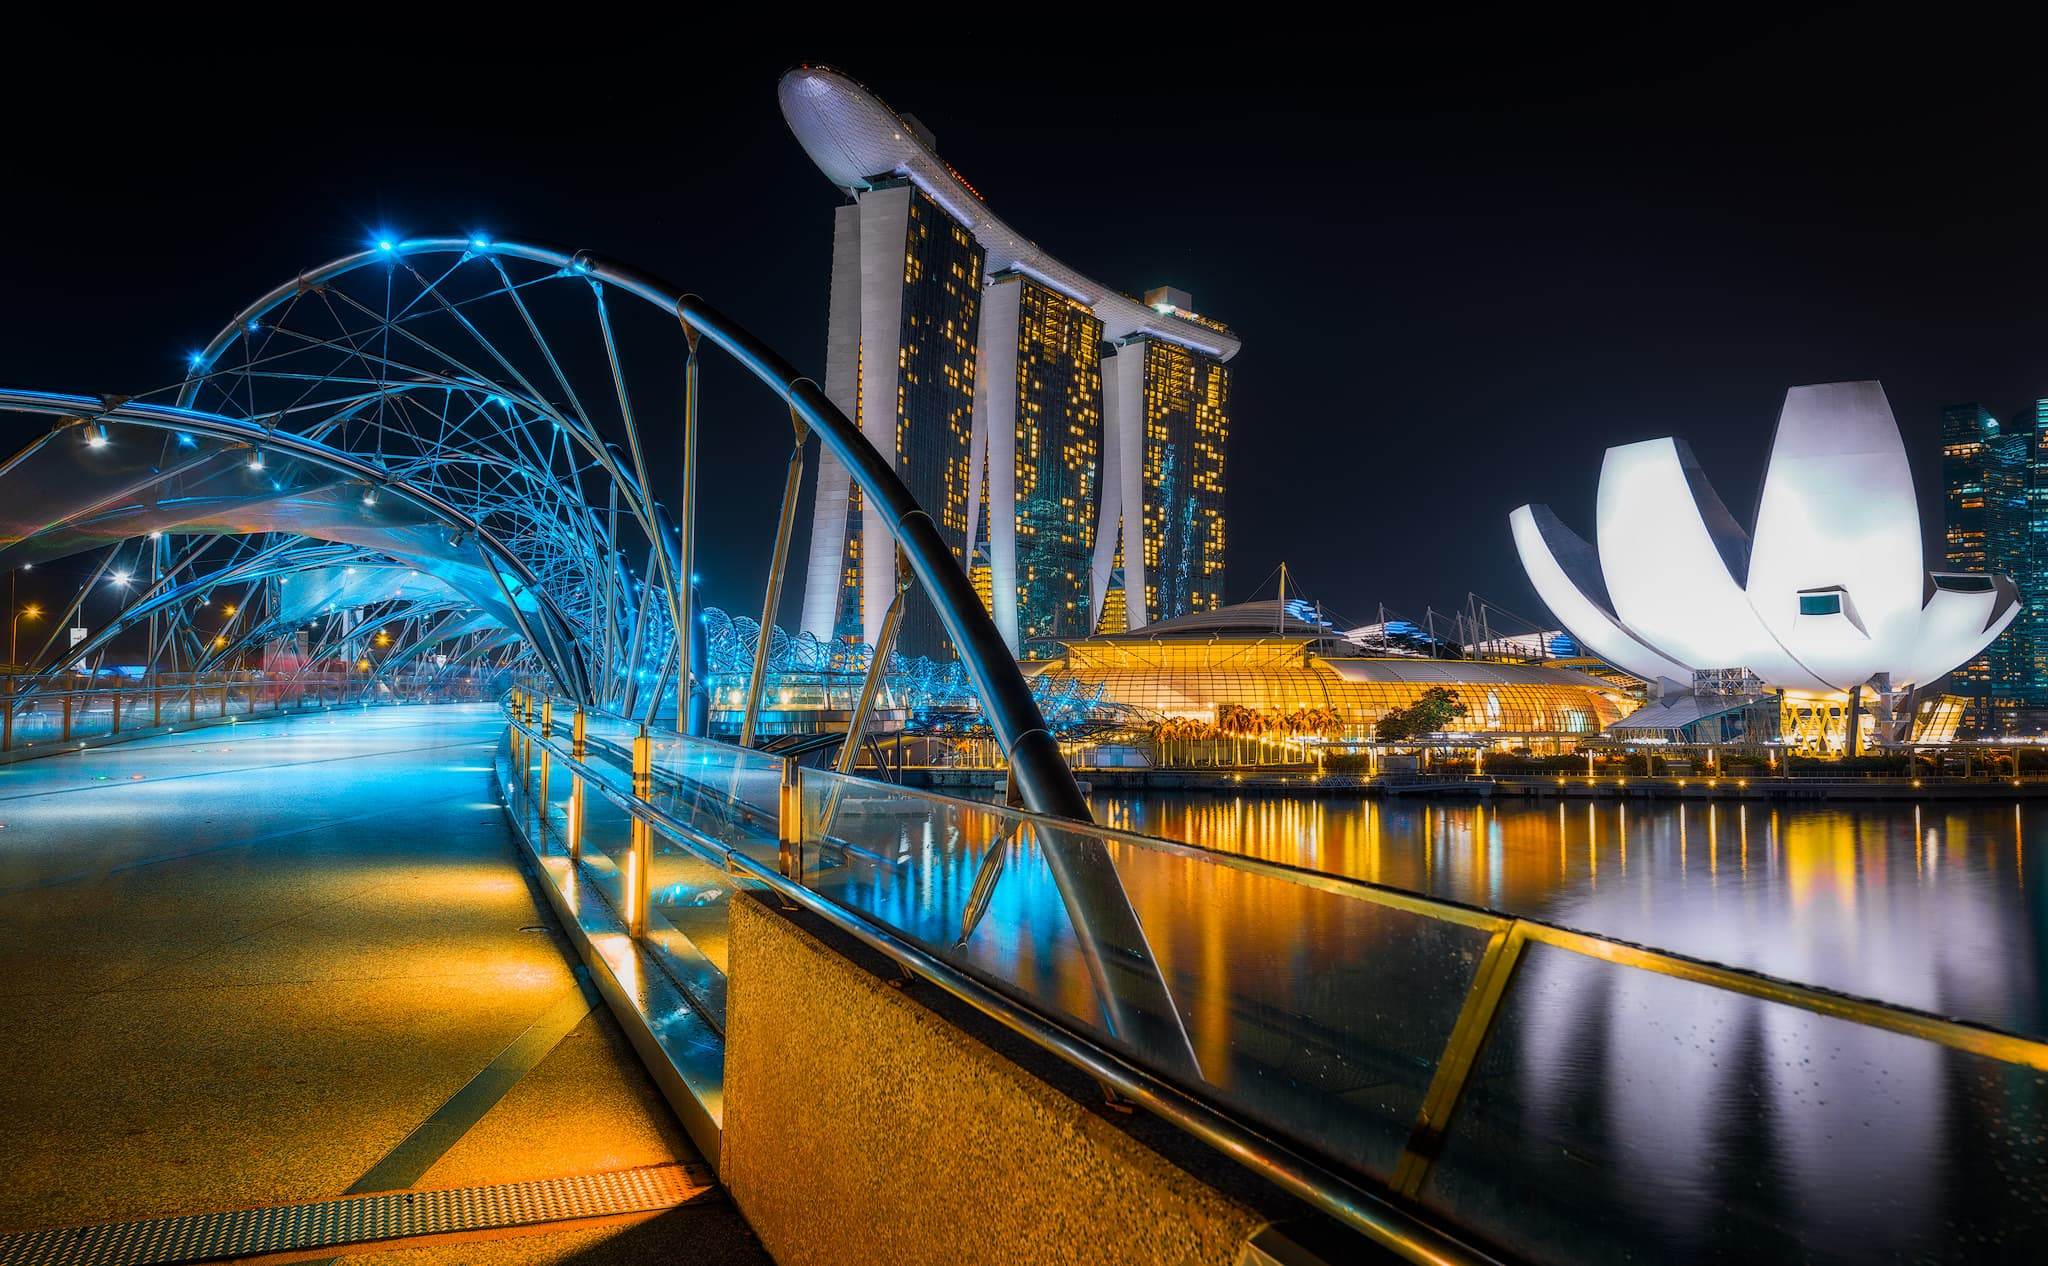 A beautiful view on the Helix Bridge, Marina Bay Sands and Art Science Museum.